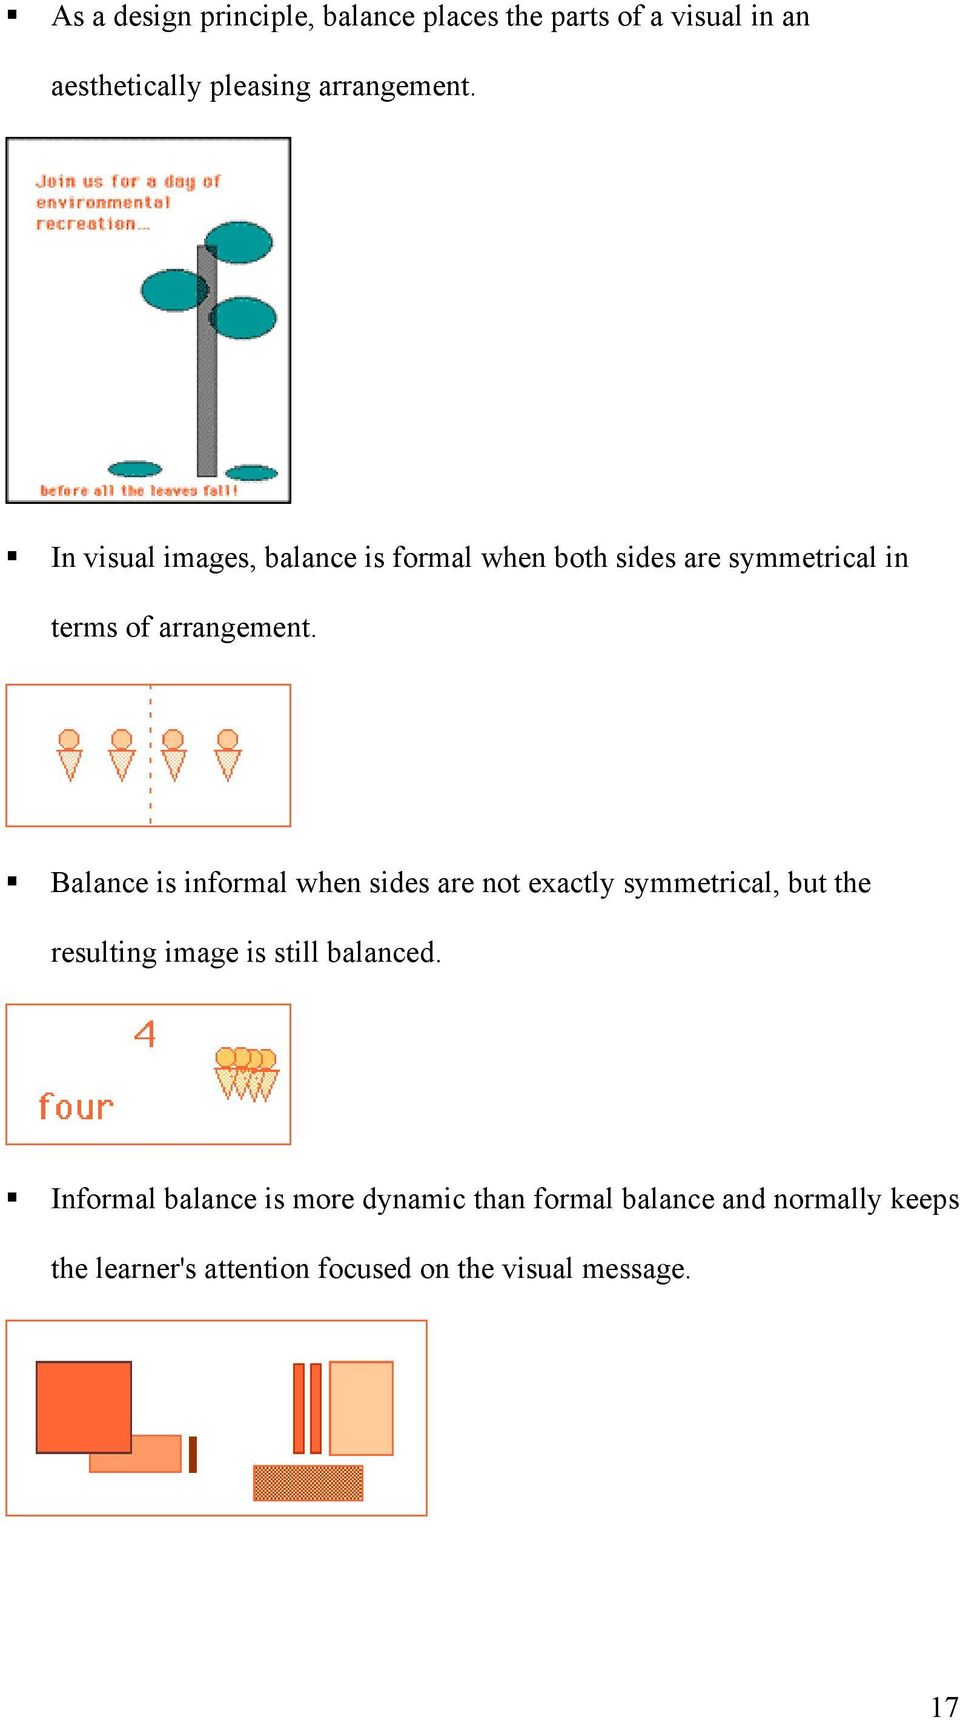 Balance is informal when sides are not exactly symmetrical, but the resulting image is still balanced.